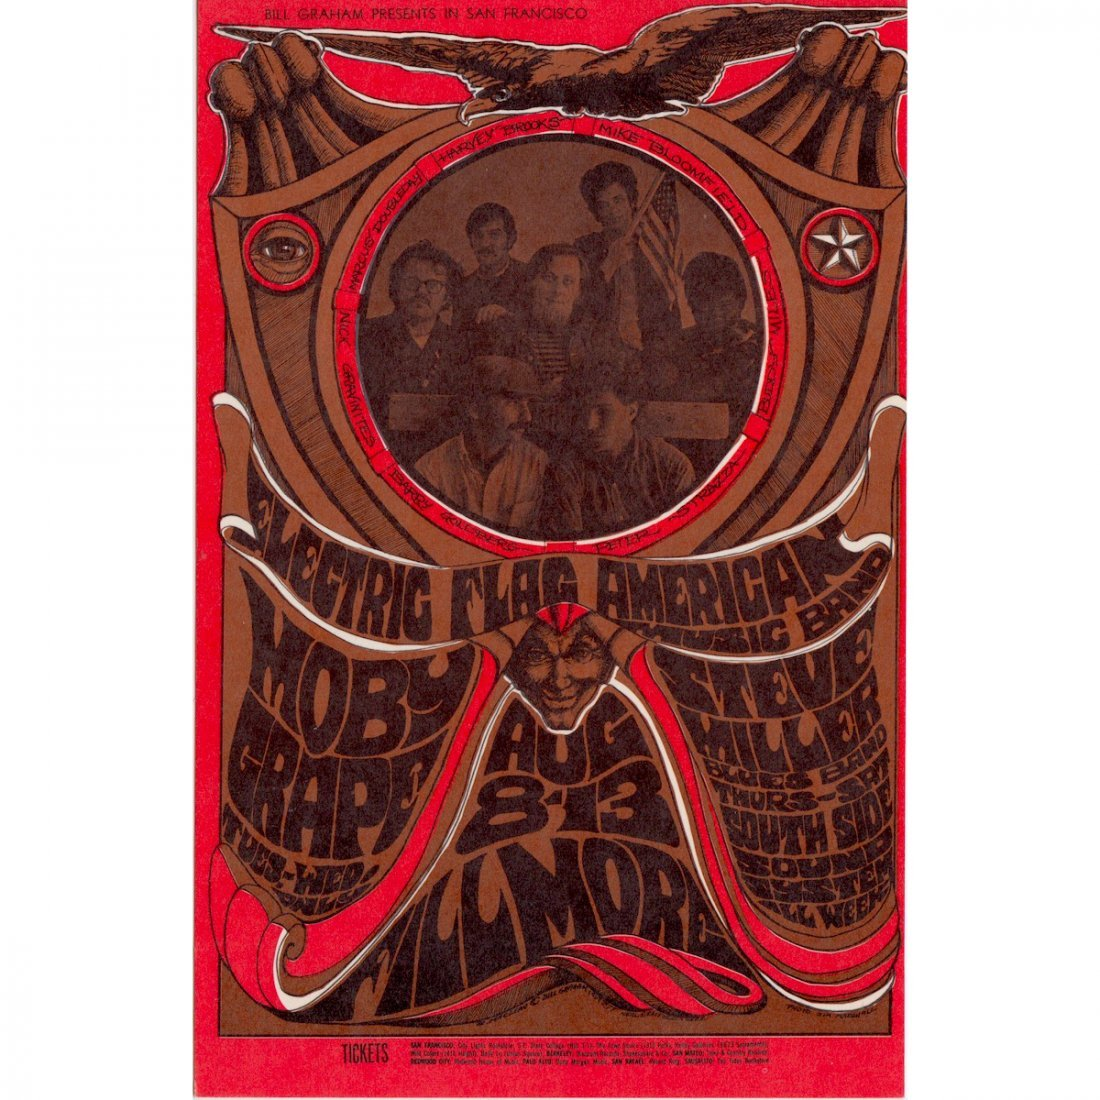 Electric Flag - 1967 Concert Handbill